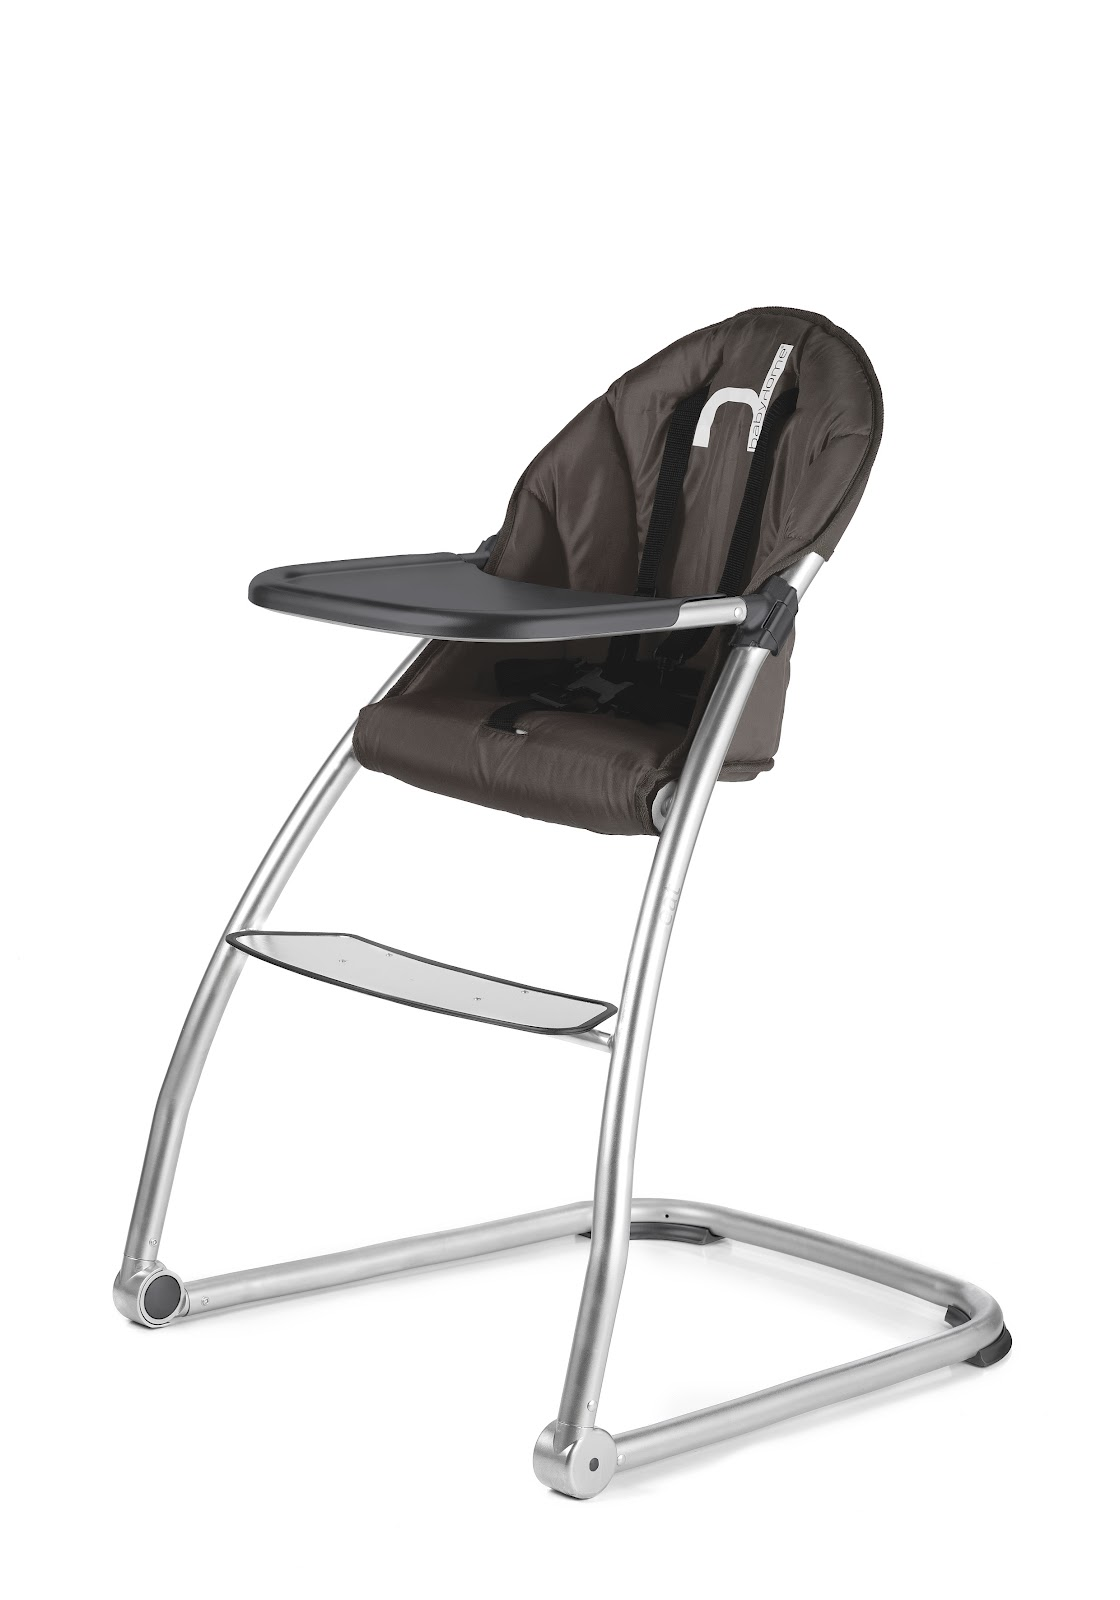 babyhome high chair beach lounge chairs eco babyz eat highchair review